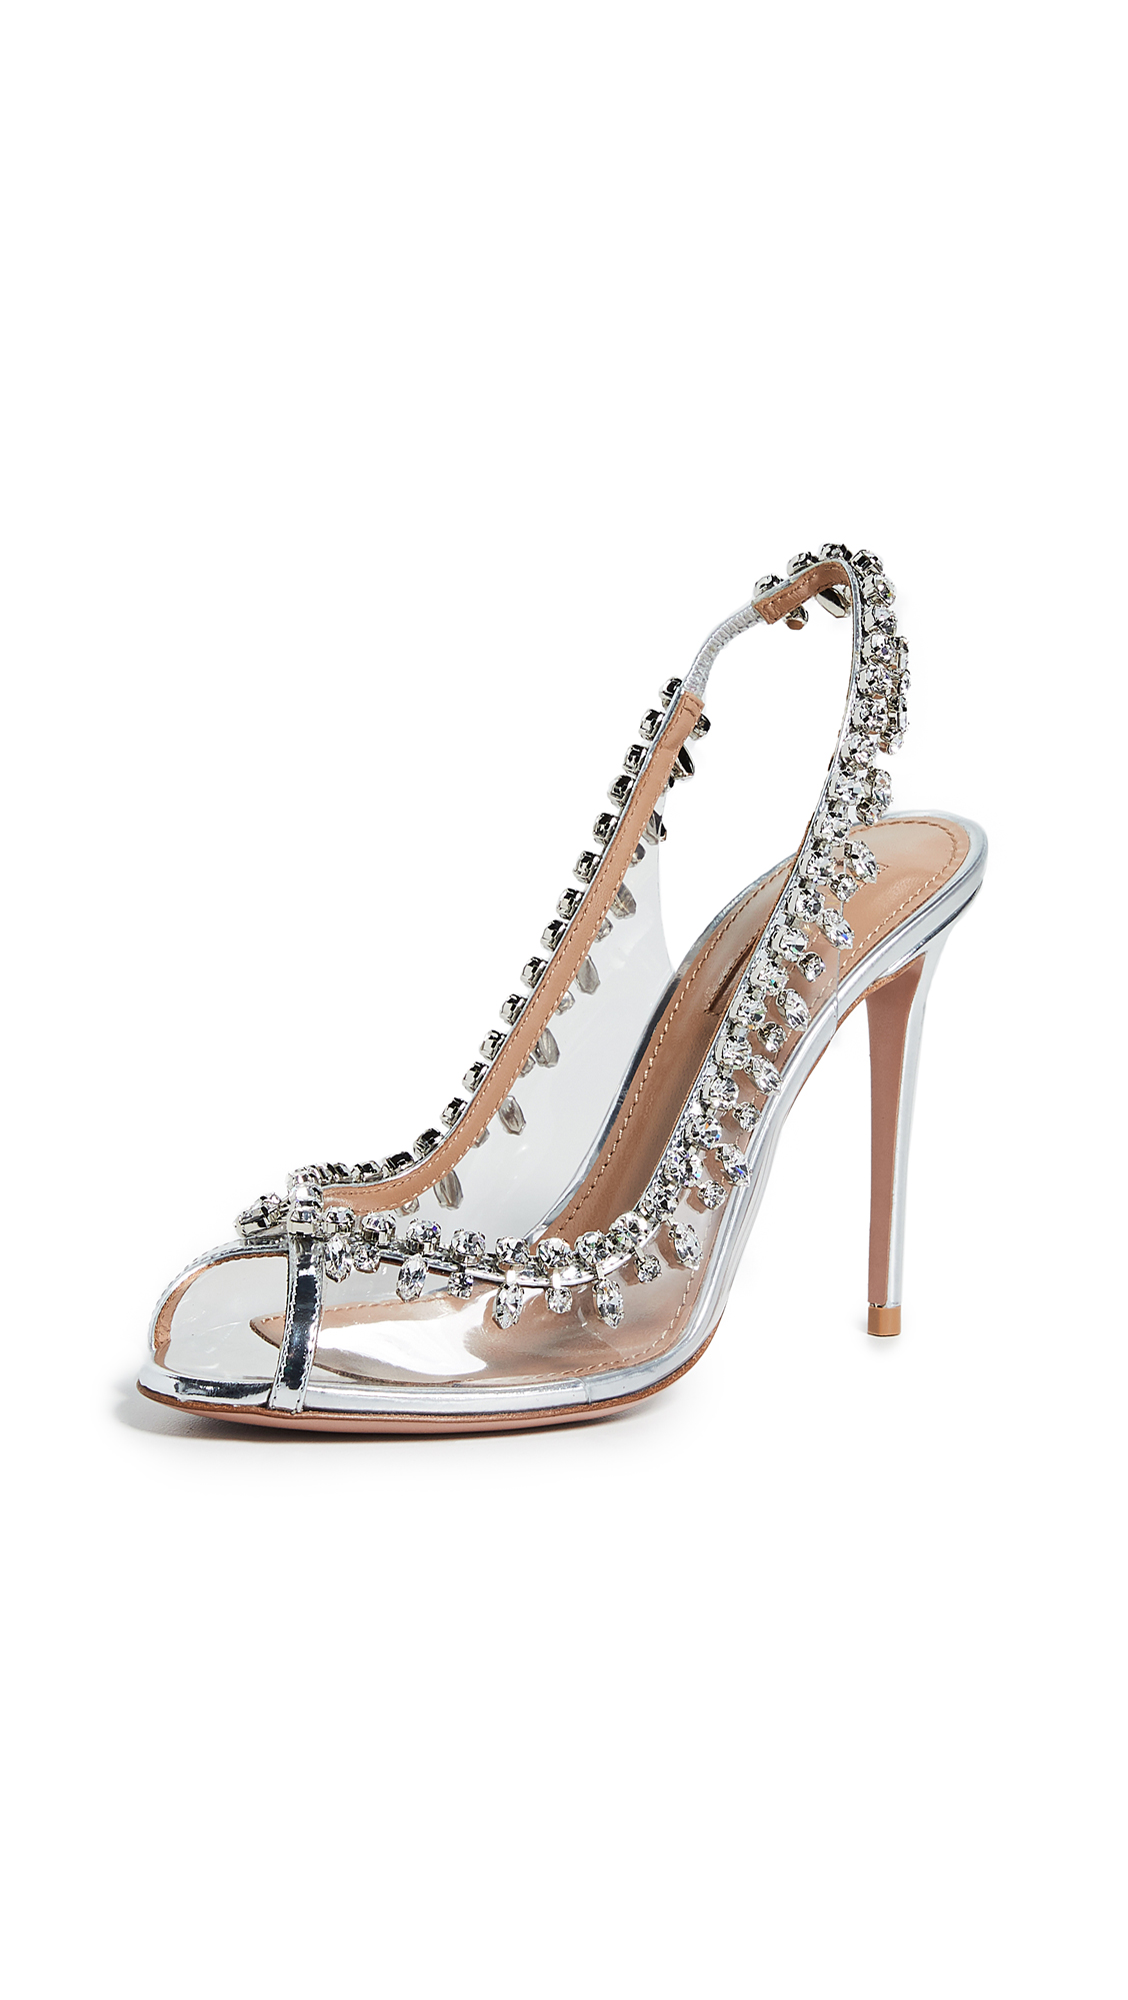 Buy Aquazzura 105mm Temptation Crystal Sandals online, shop Aquazzura